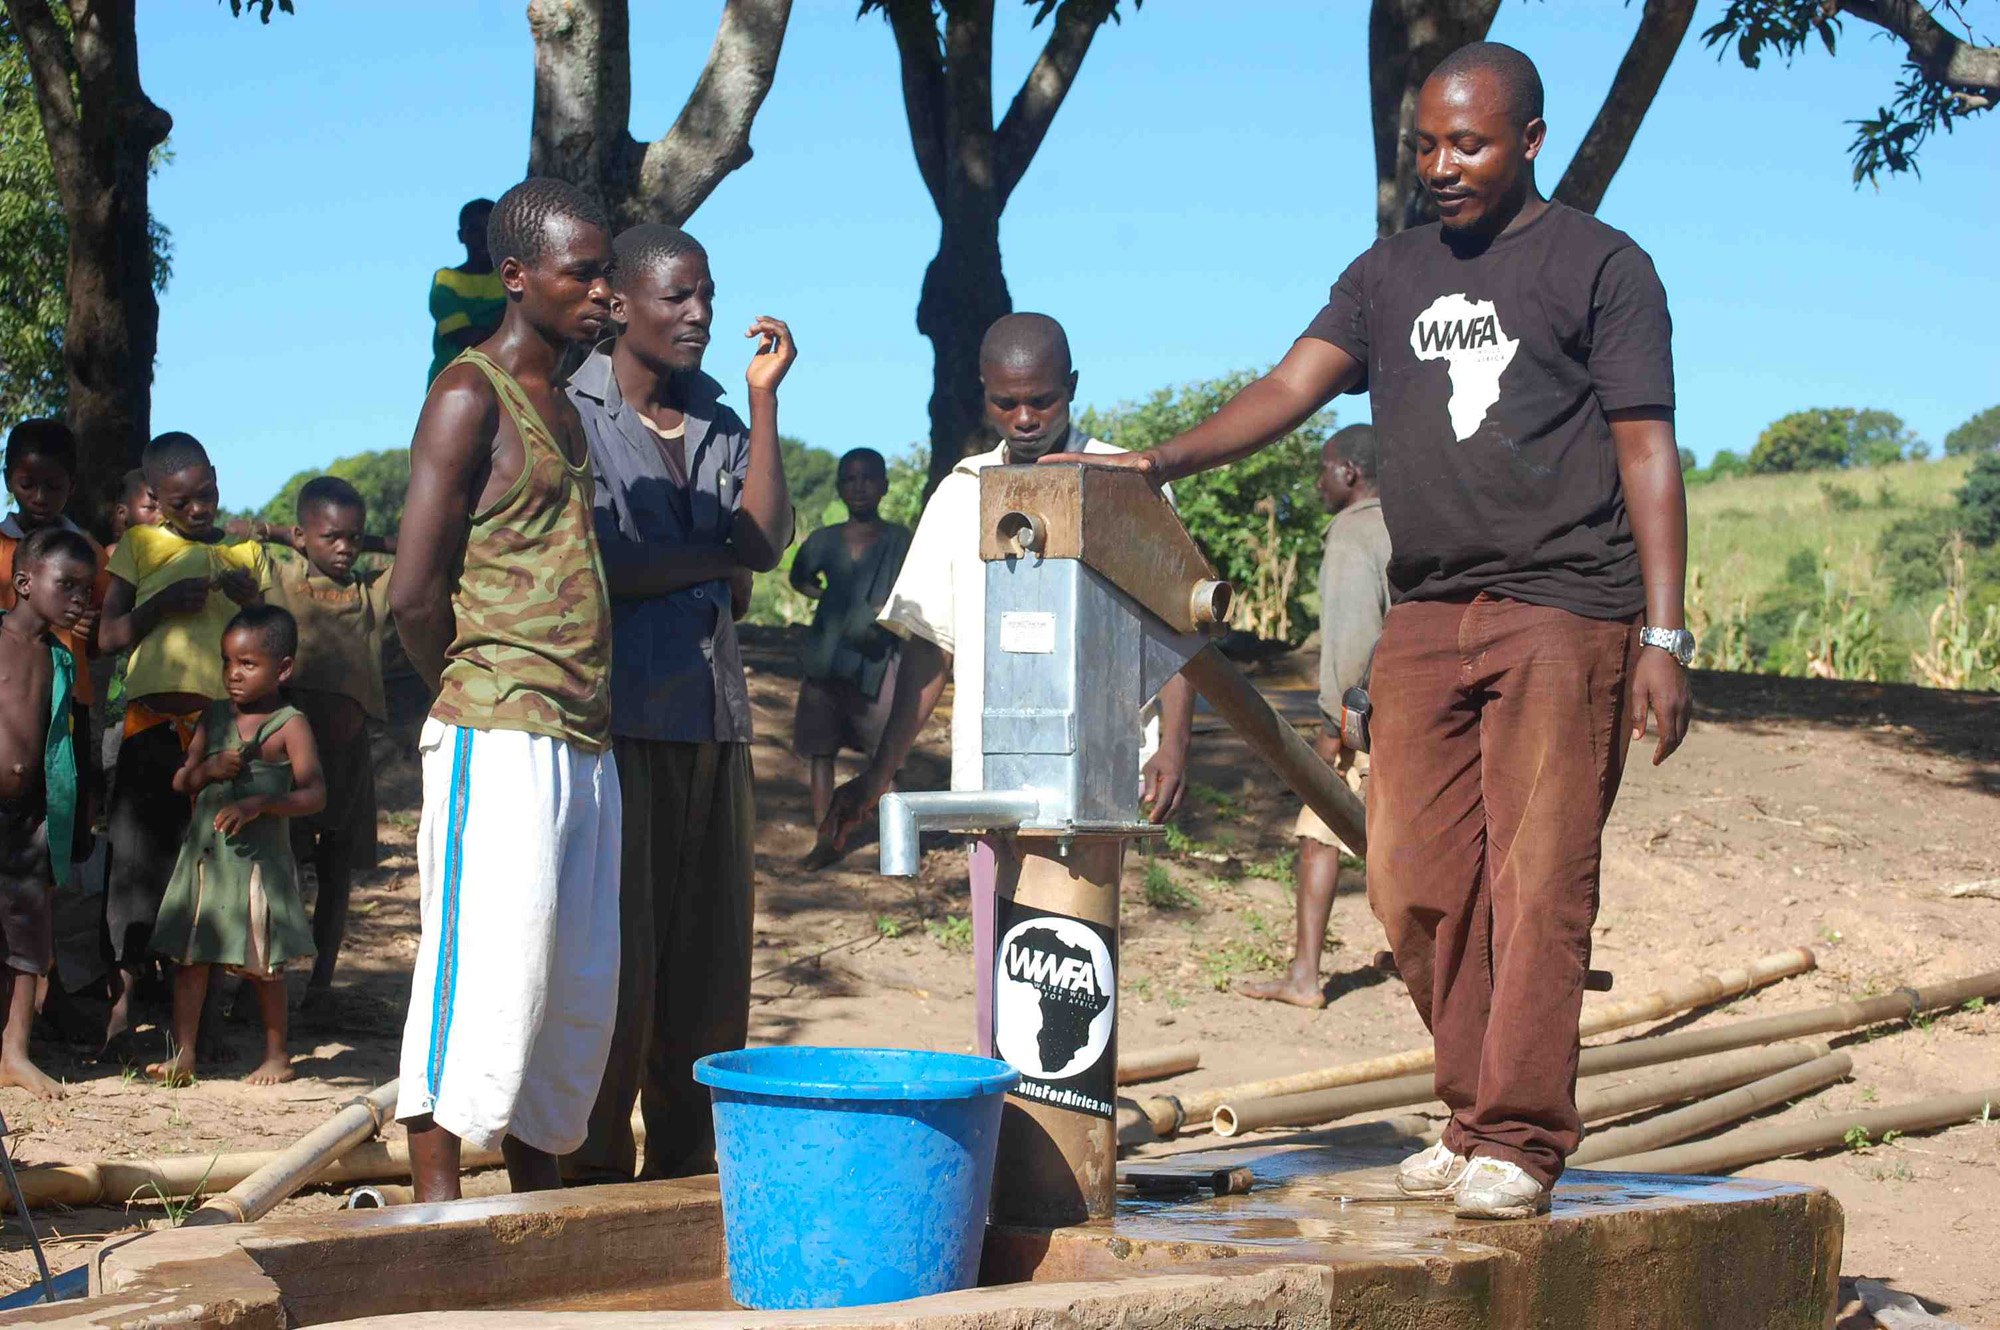 WWFA team member stands by and says a few words to thank the donors, and instruct the community in continued maintenance and care for the borehole.